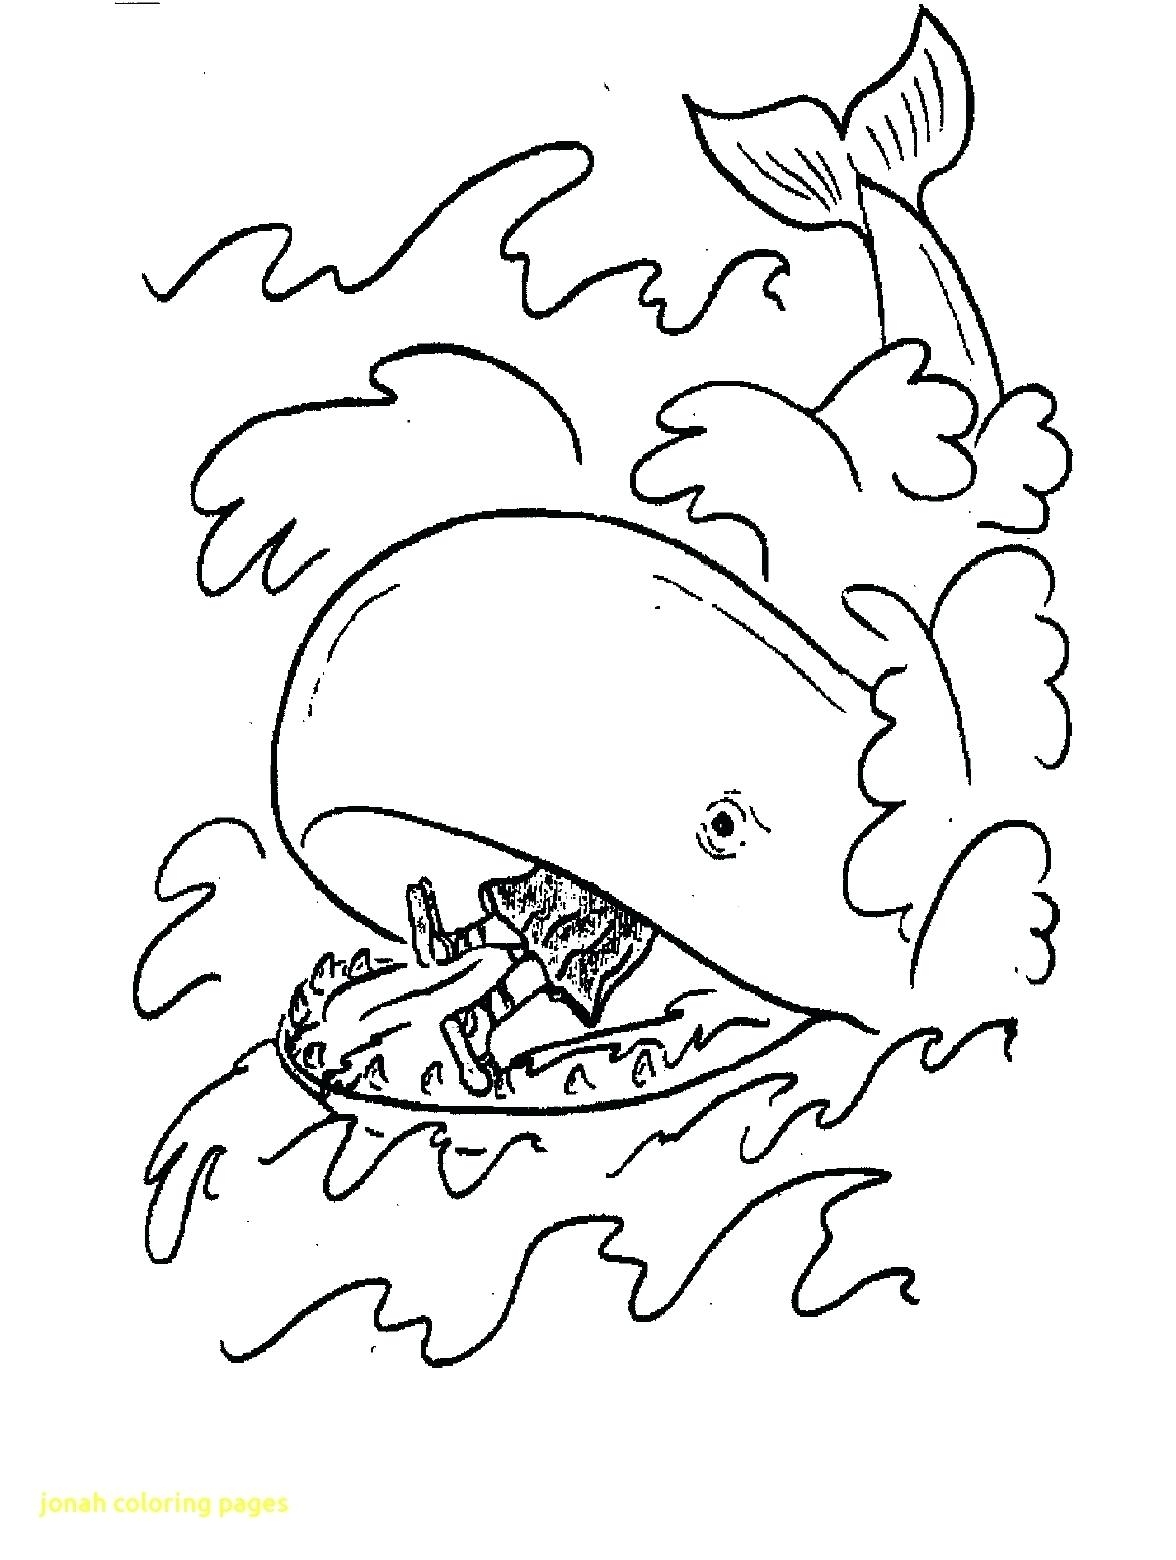 1176x1560 Cool Coloring Whale Coloring Sheet Pages With Free Printable